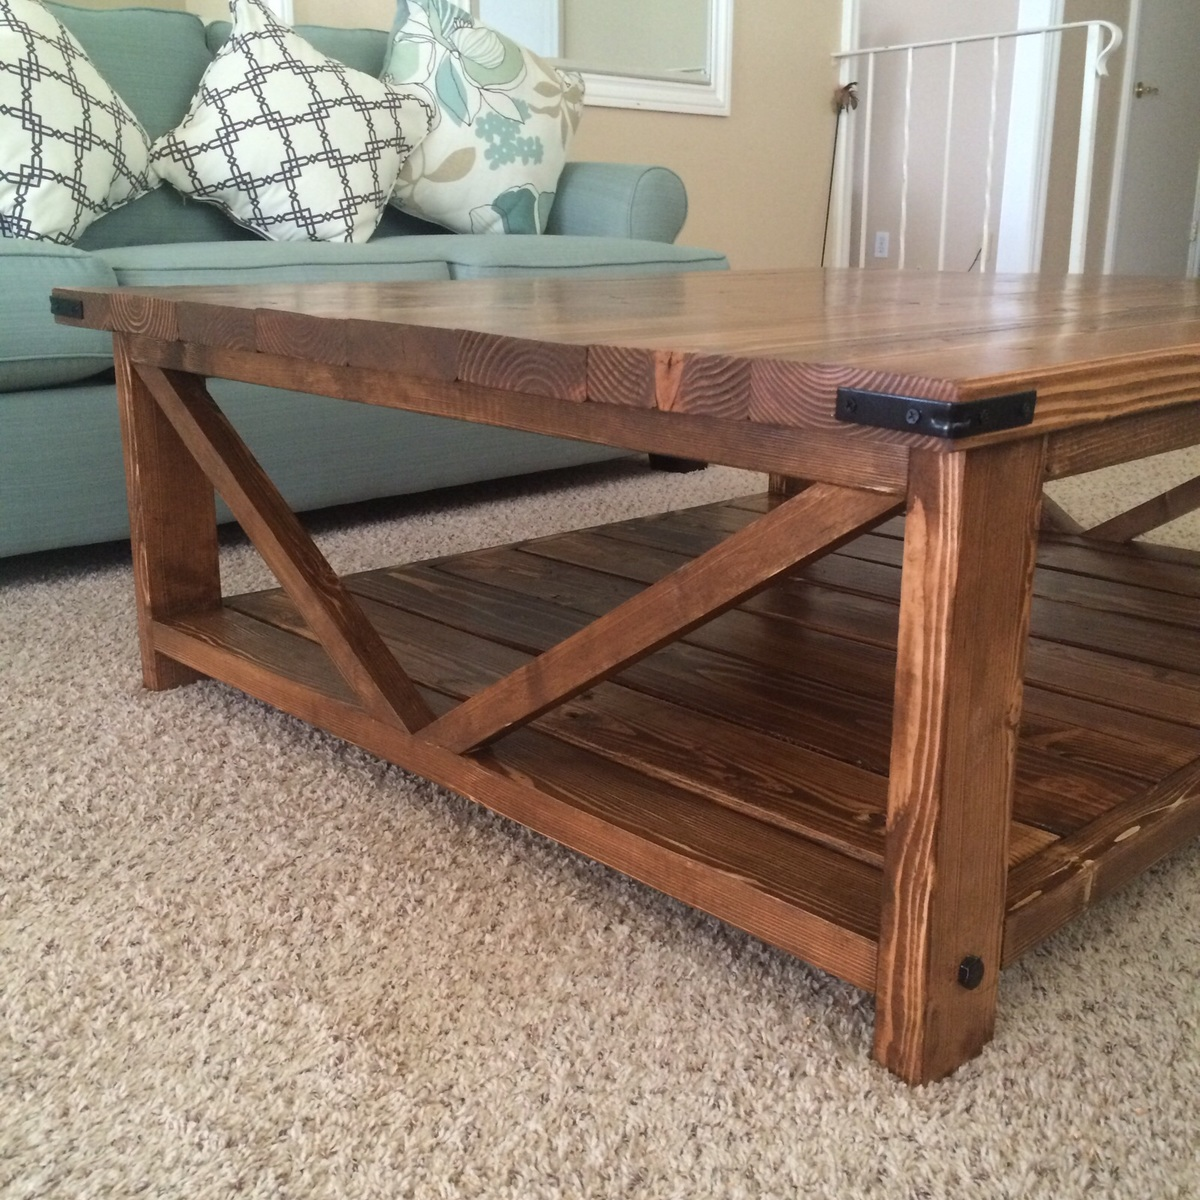 Ana White Modified Rustic X Coffee Table DIY Projects